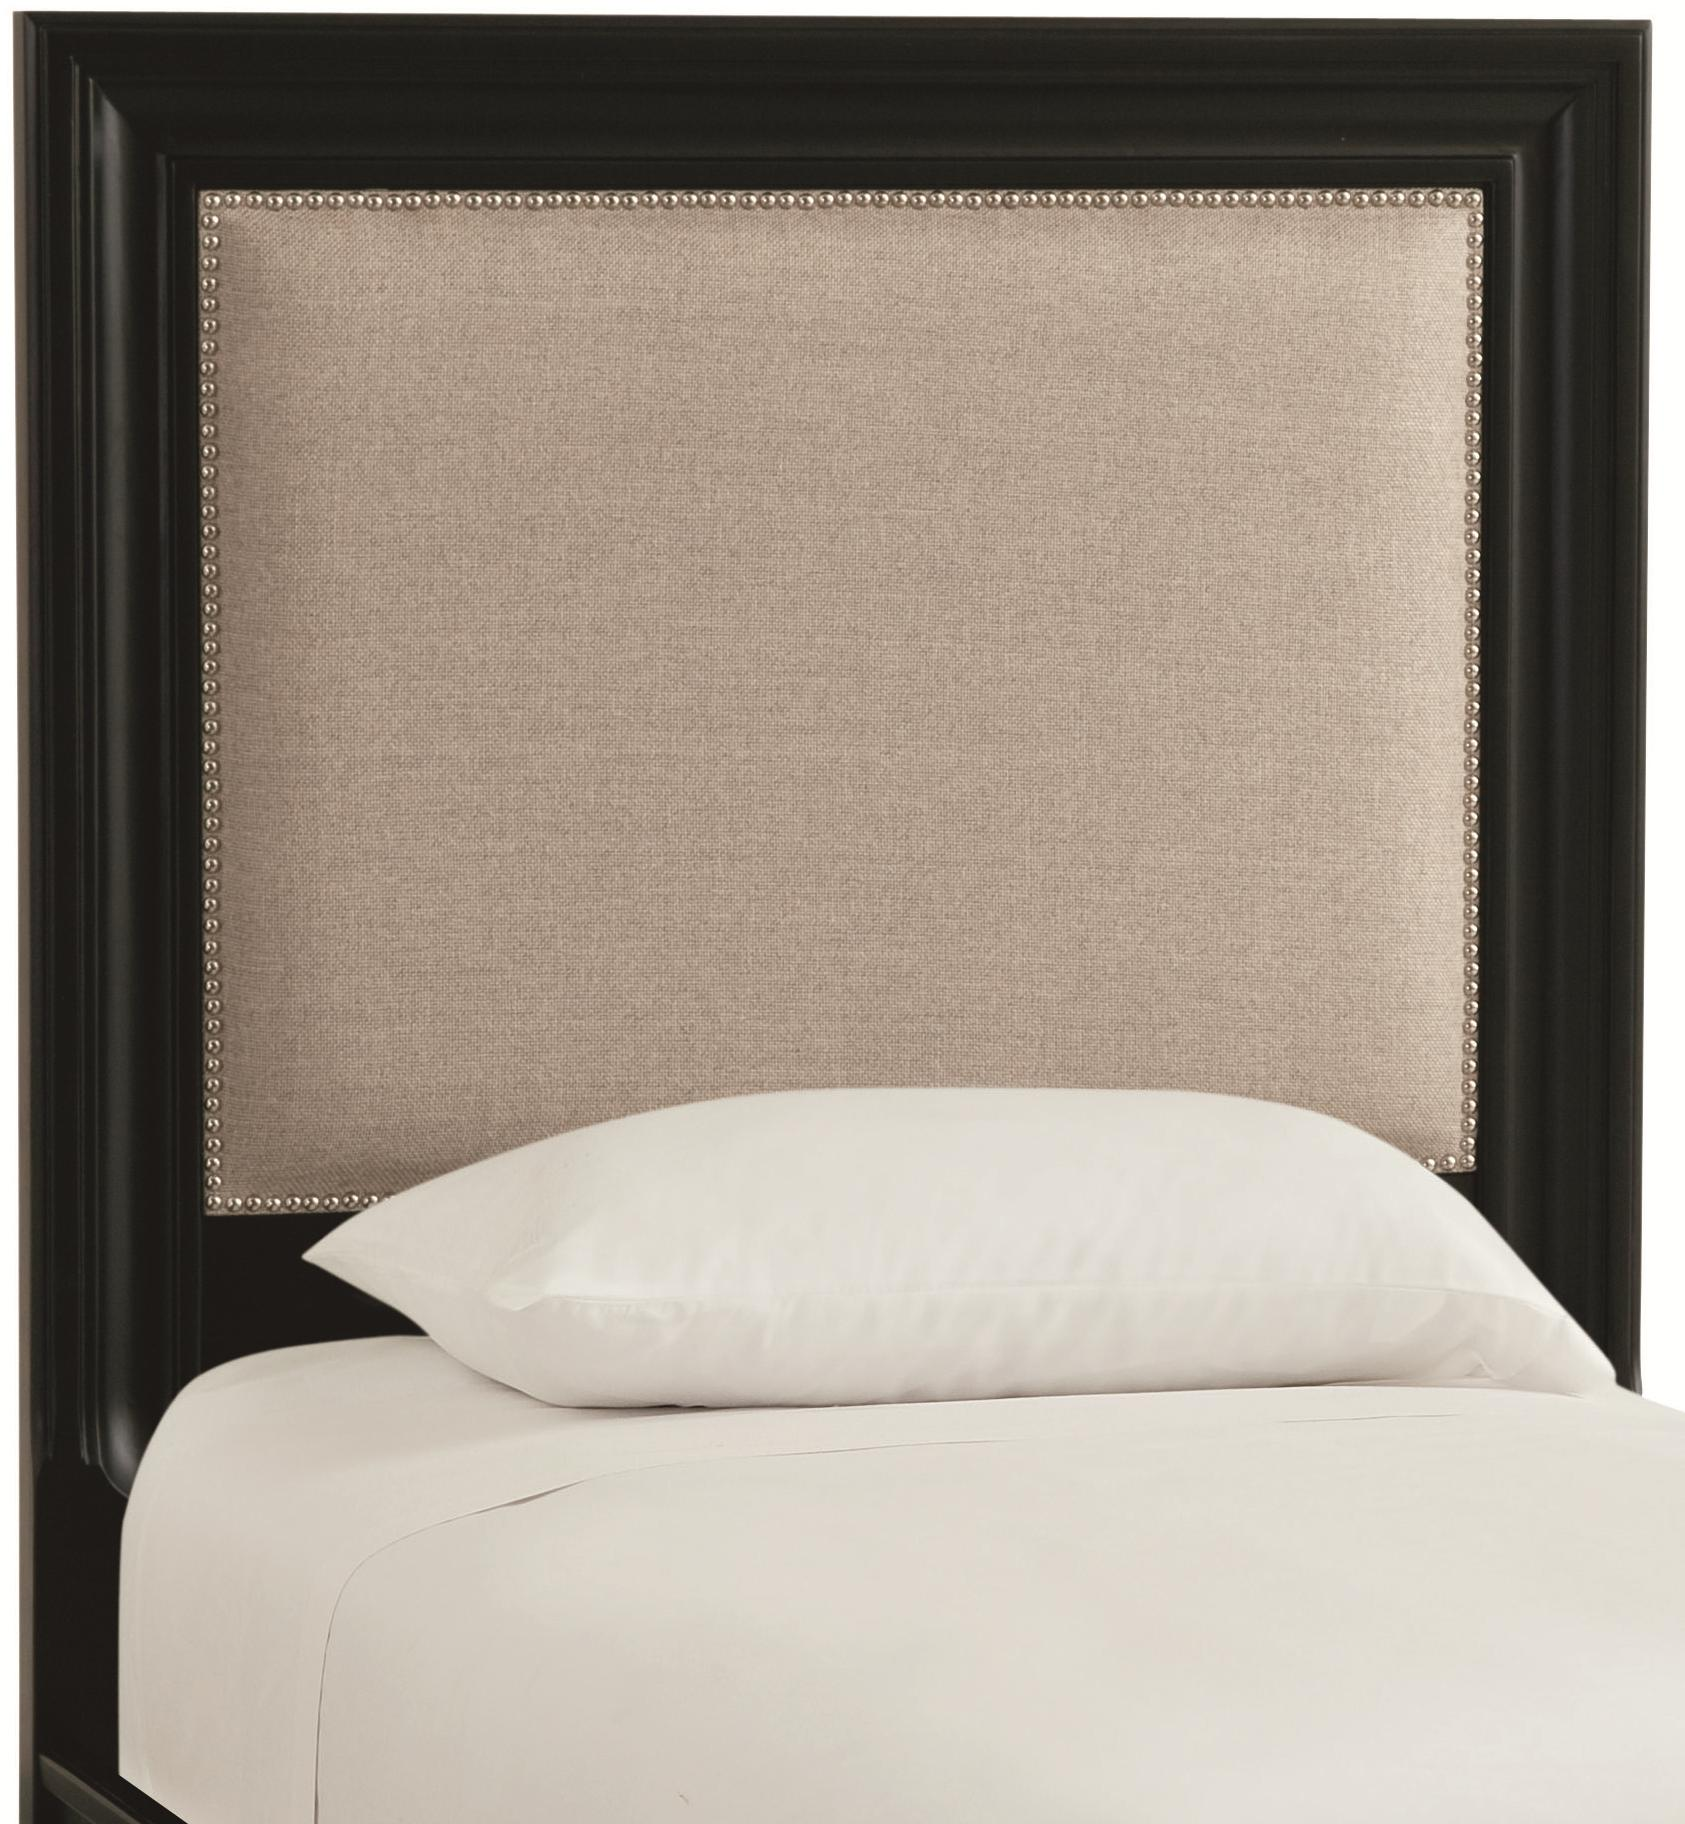 Thomasville® Manuscript Twin Upholstered Headboard - Item Number: 82919-433